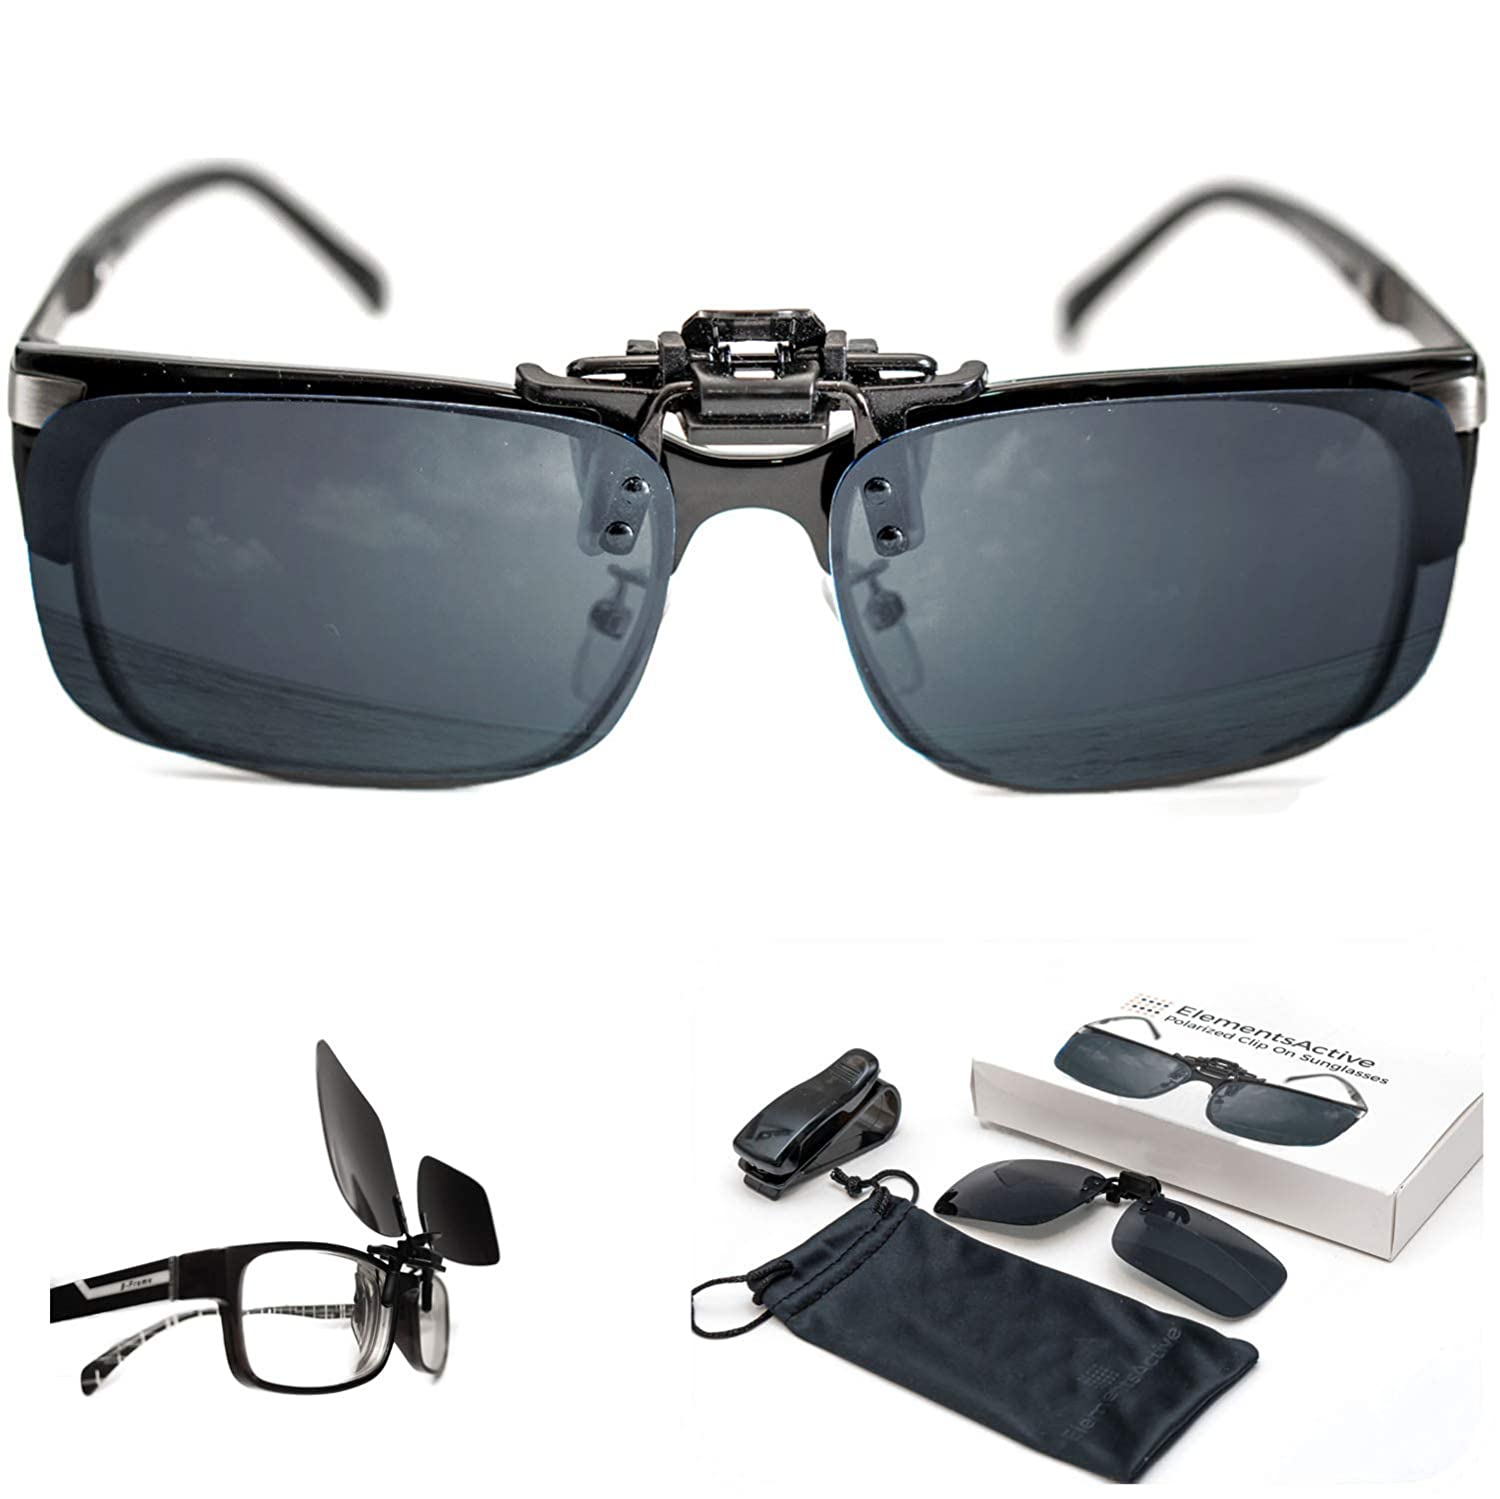 e78858619d Amazon.com  Polarized Clip-on Driving Sunglasses with Flip Up